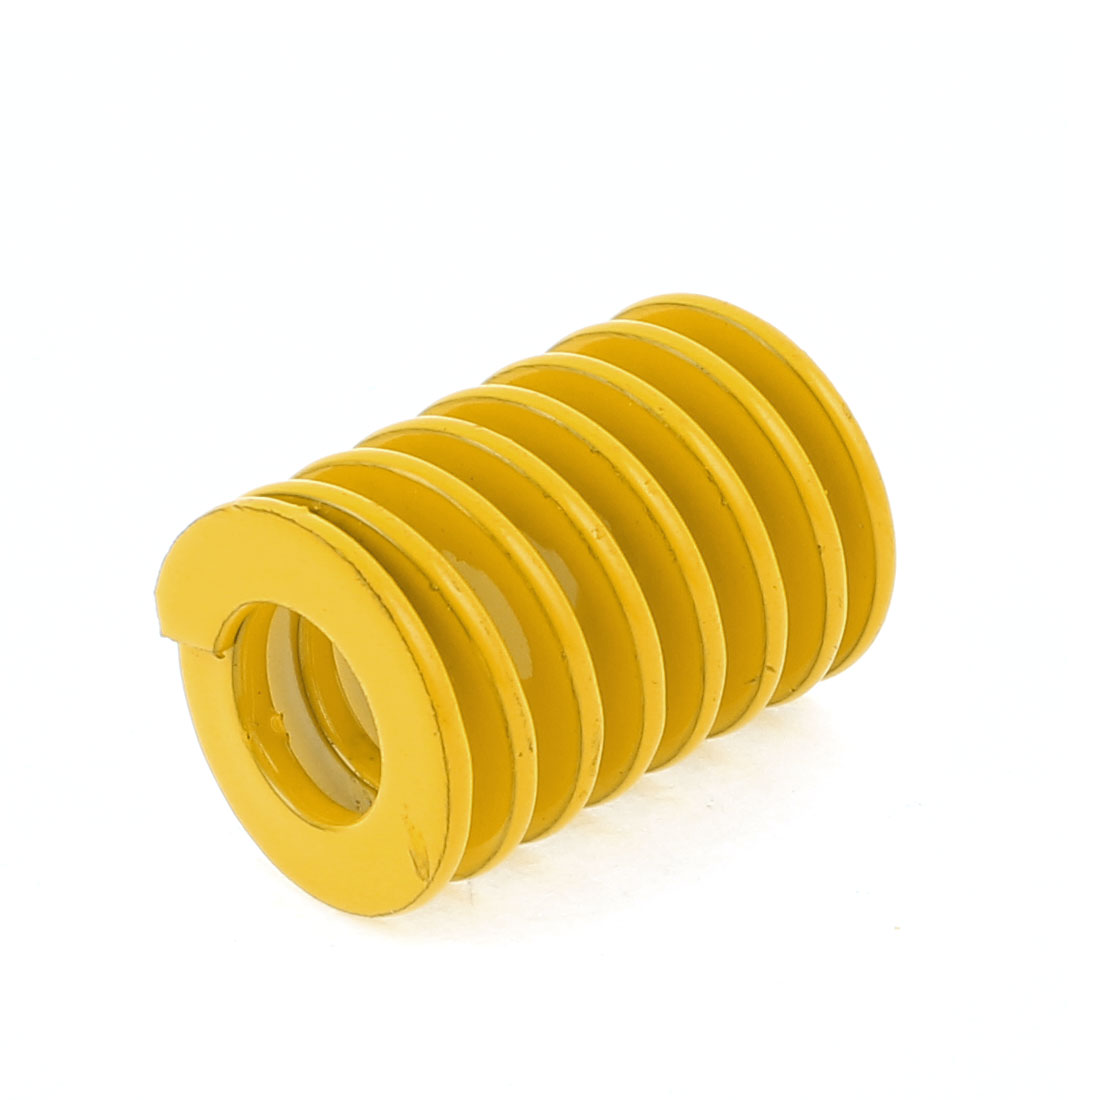 18mmx9mm Dia 25mm Long Chromium Alloy Steel Mould Die Spring Yellow